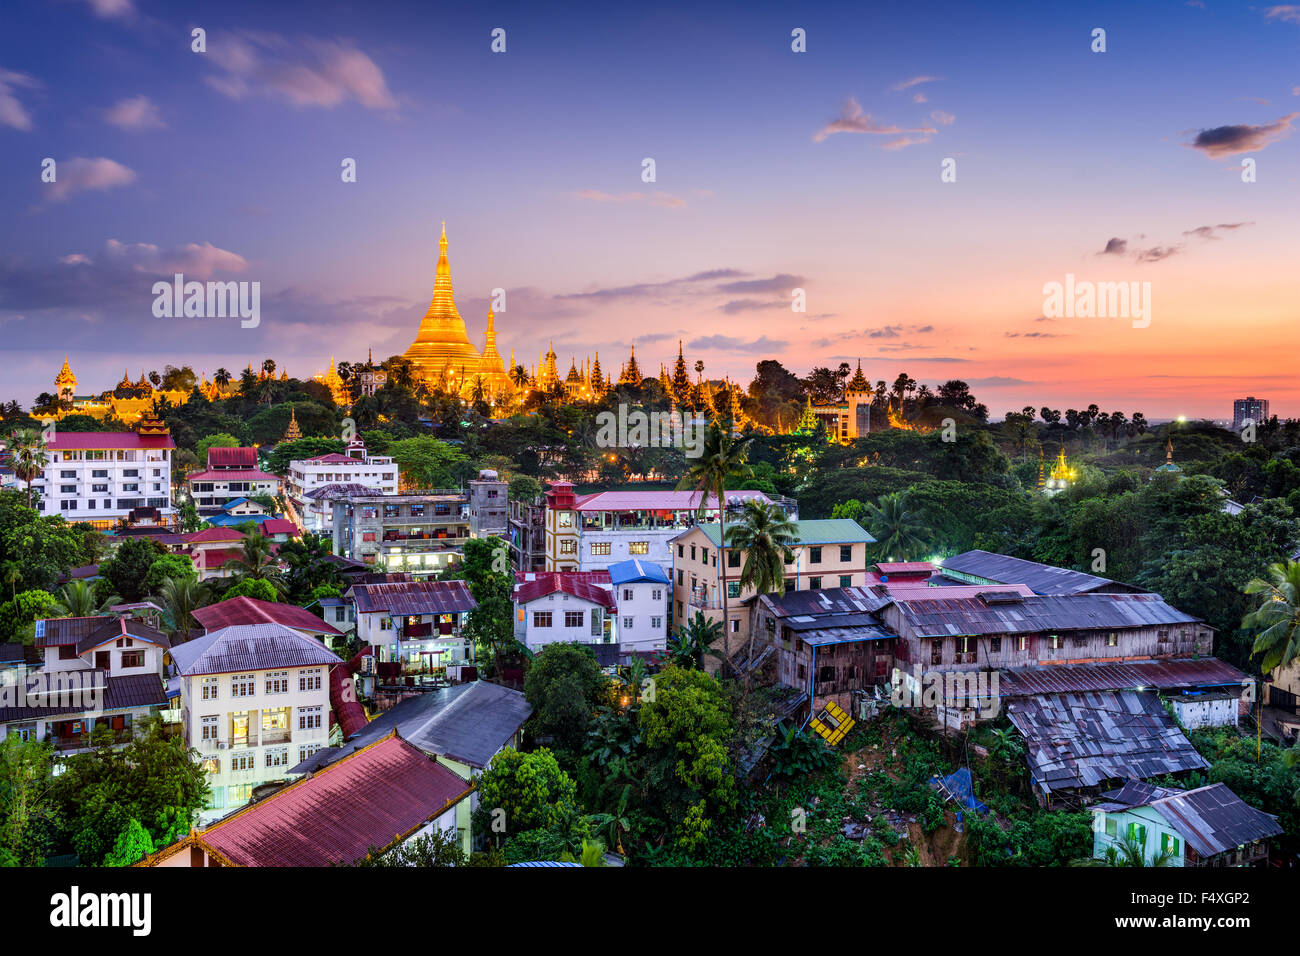 Yangon, Myanmar skyline with Shwedagon Pagoda. - Stock Image